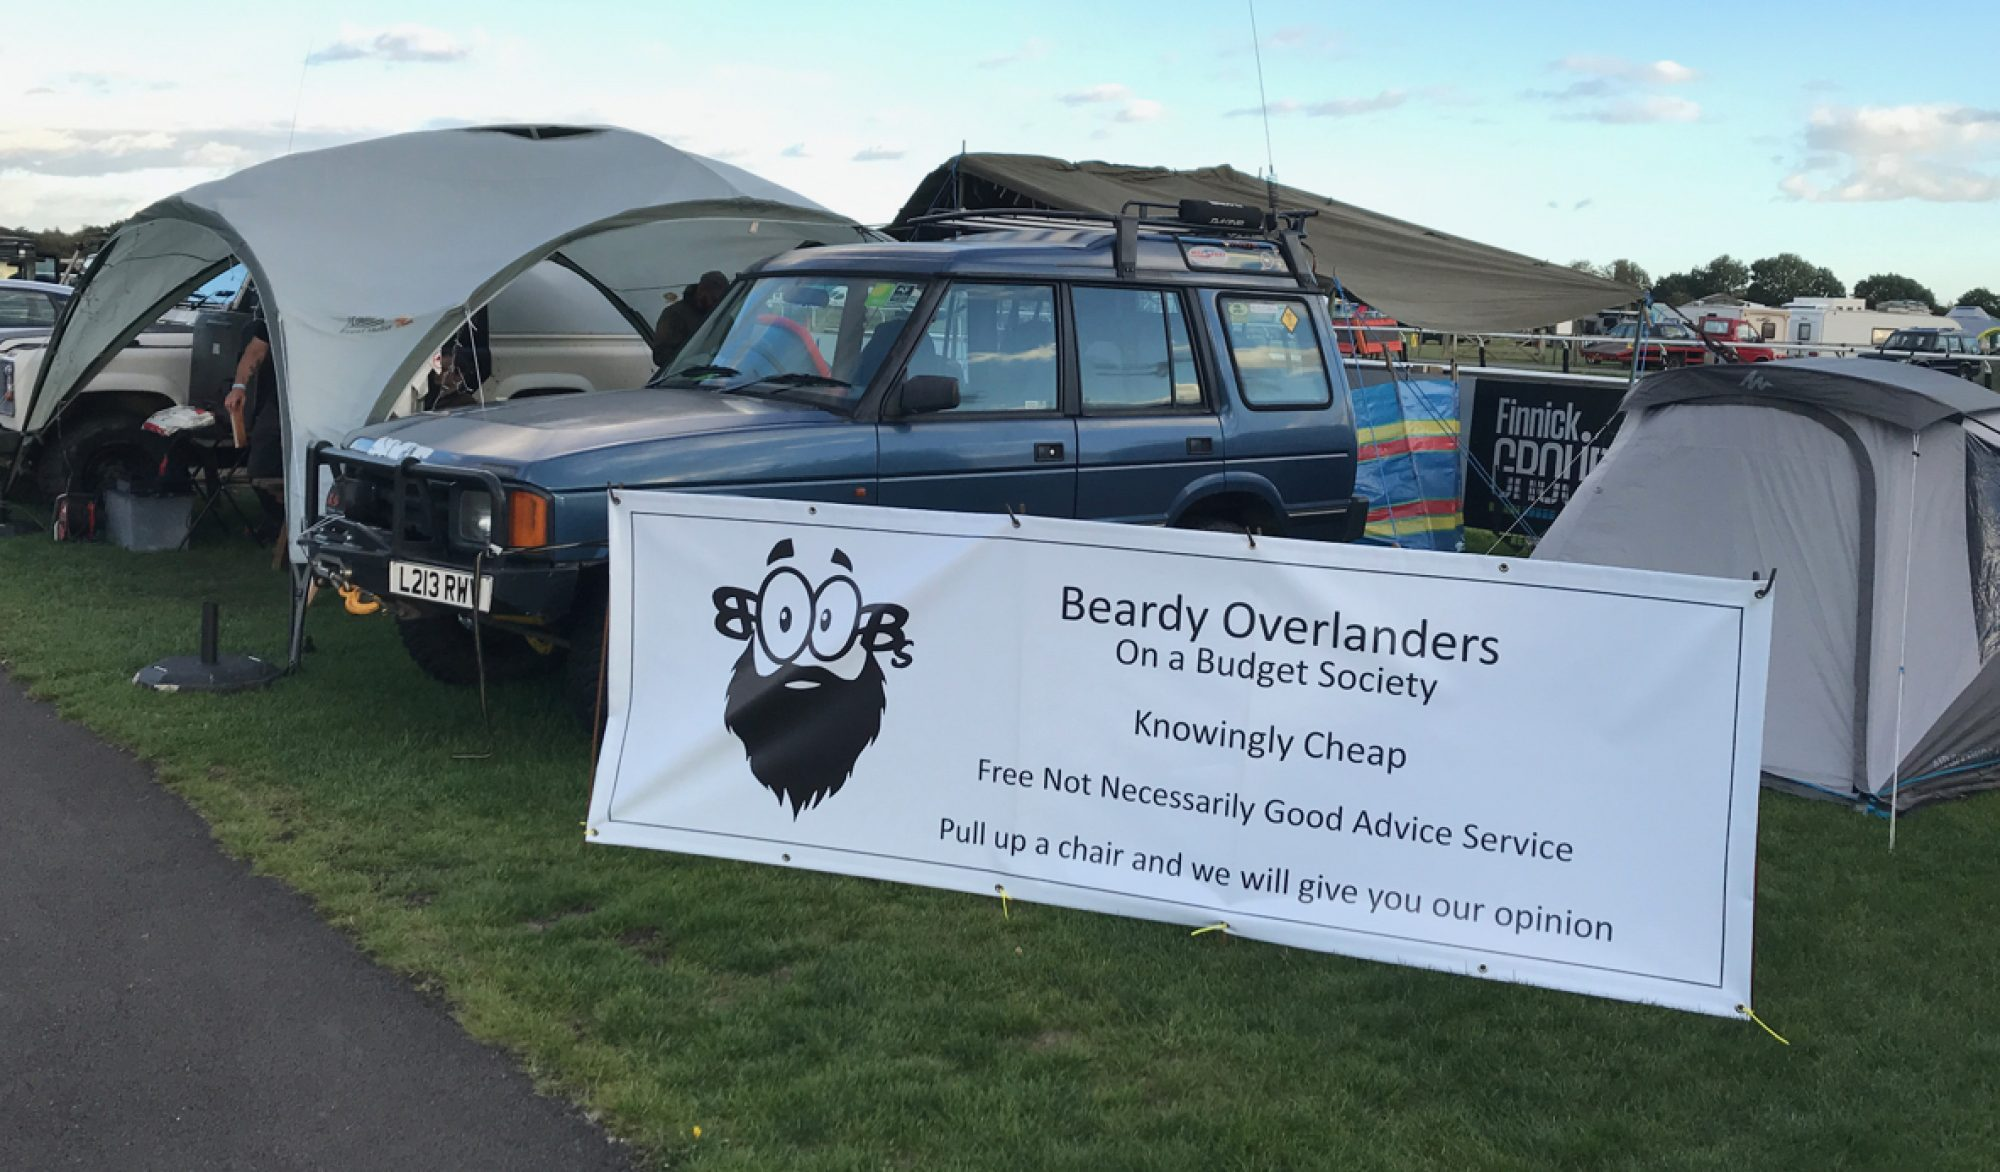 Beardy Overlanders On a Budget Society